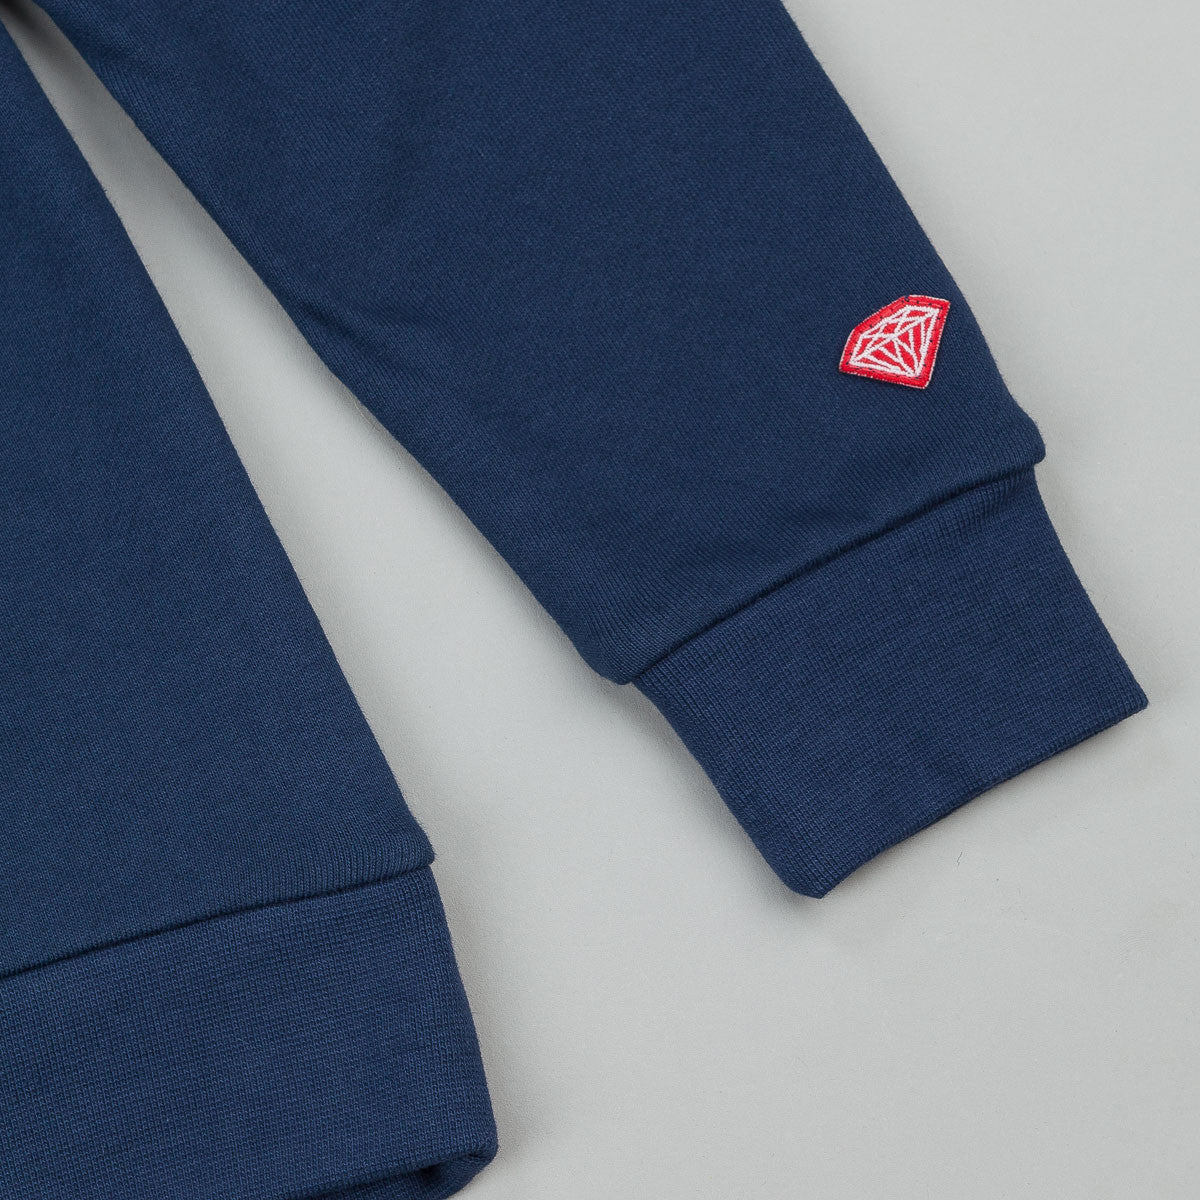 Diamond Unpolo Hooded Sweatshirt - Navy